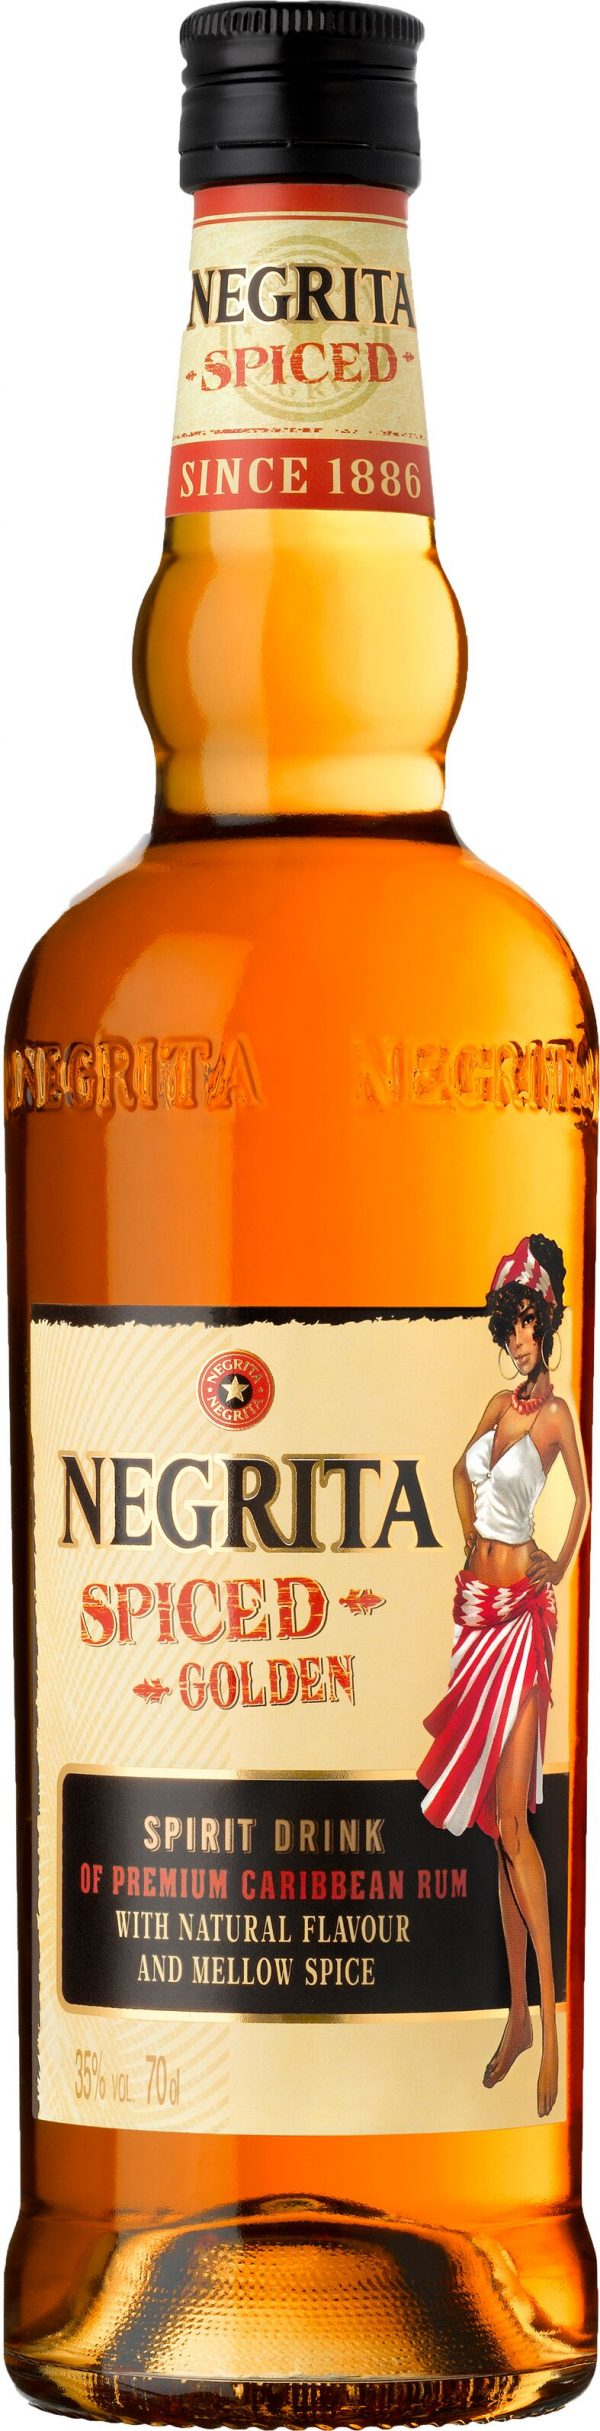 Negrita Spiced Golden Spirit Drink 70cl